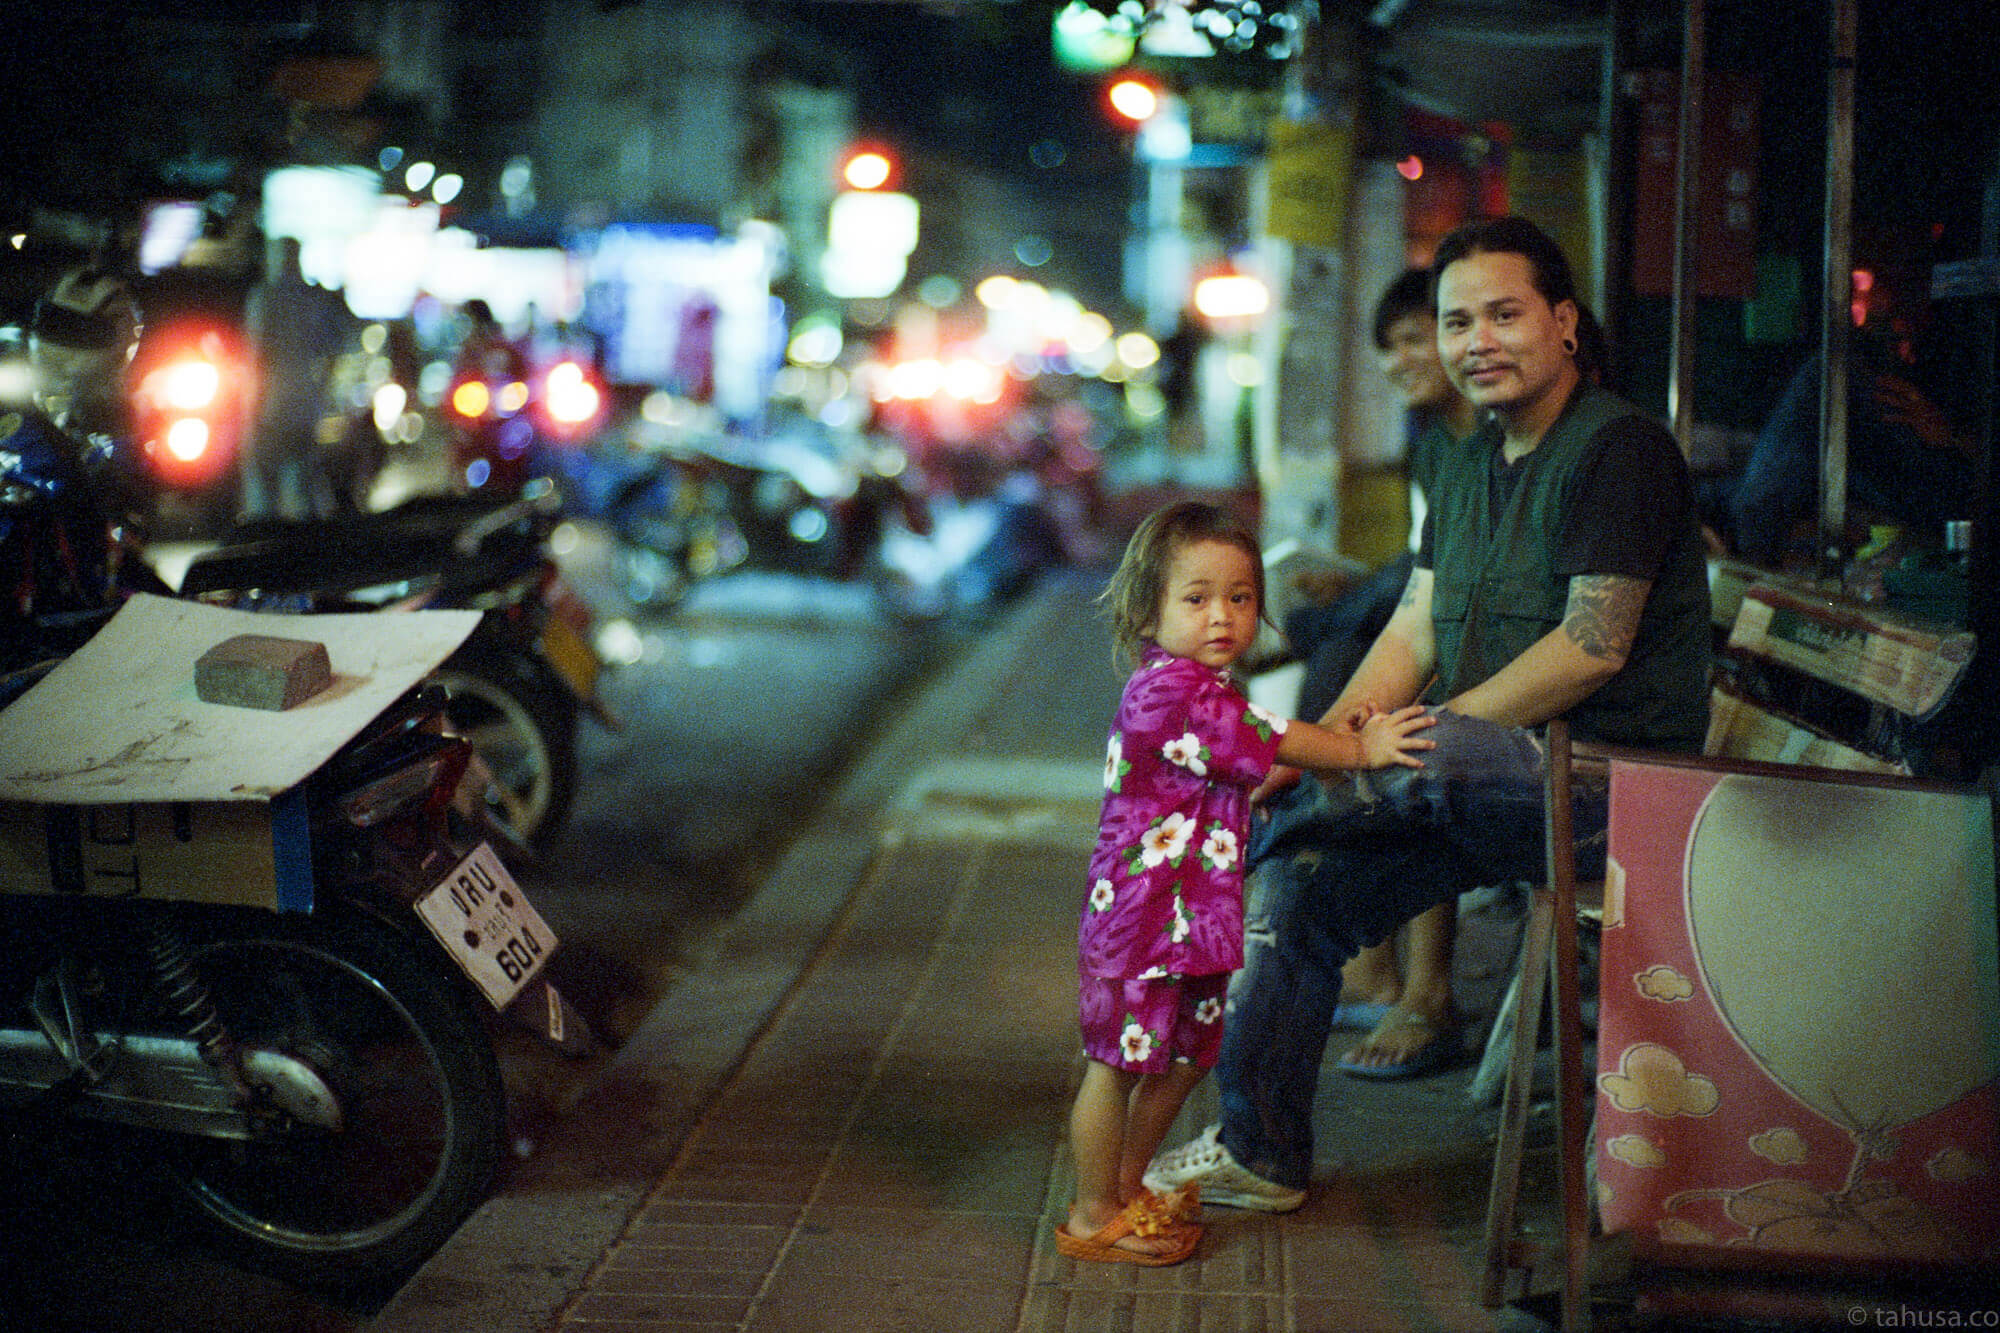 father-and-daughter-sitting-on-street-pattaya-thailand-HK-Cinestill-800T-800-iso800-Tungsten-film-movie-kodak-with-Noctilux-50mm-f1-f1.0-e58-v1-large-aperture-bokeh-grain-pushed-street-snap